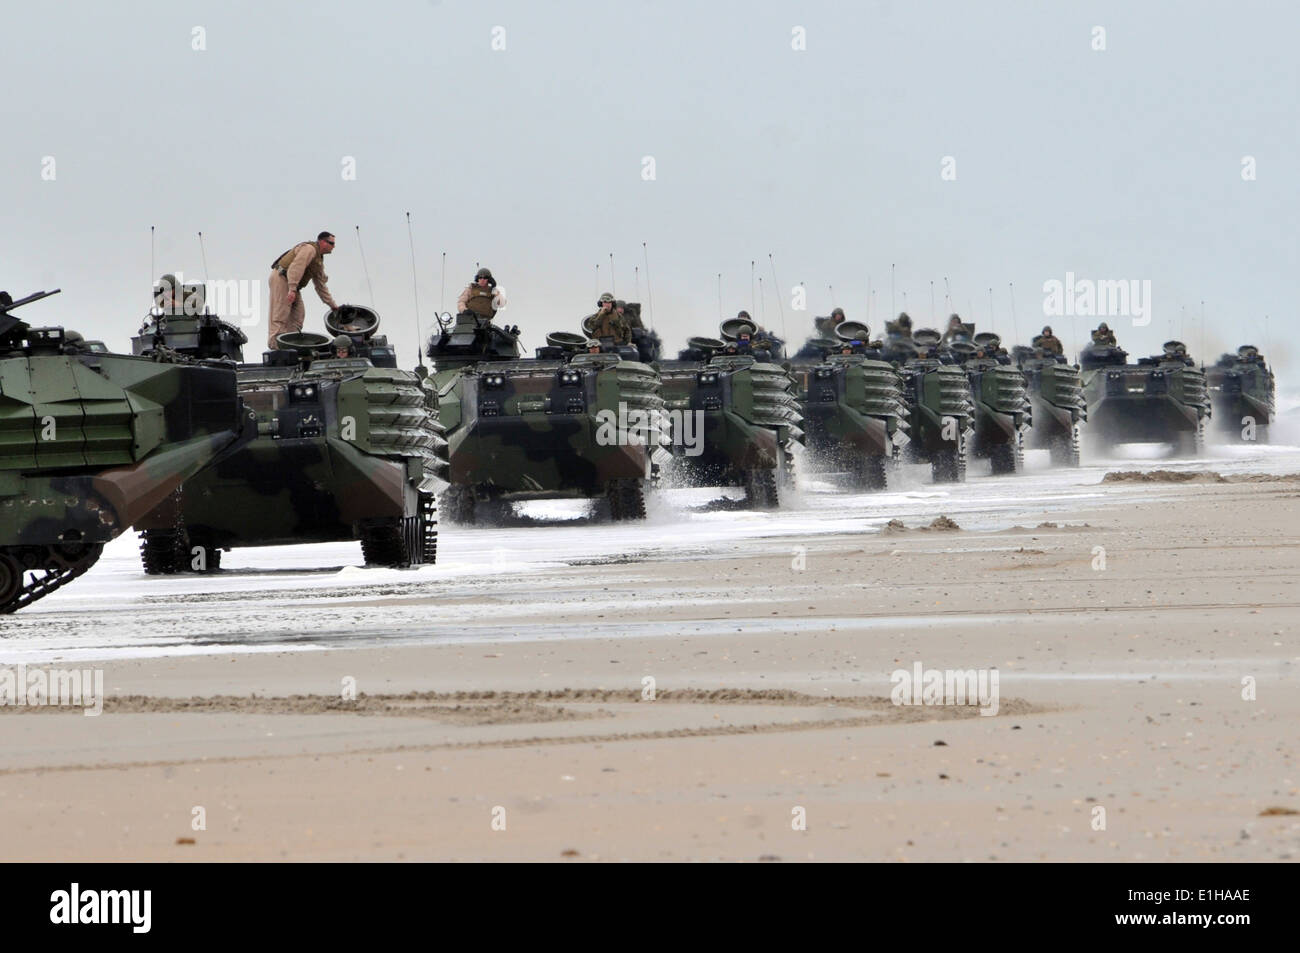 U S Marine Corps Amphibious Assault Vehicles Move Into Position Stock Photo Alamy